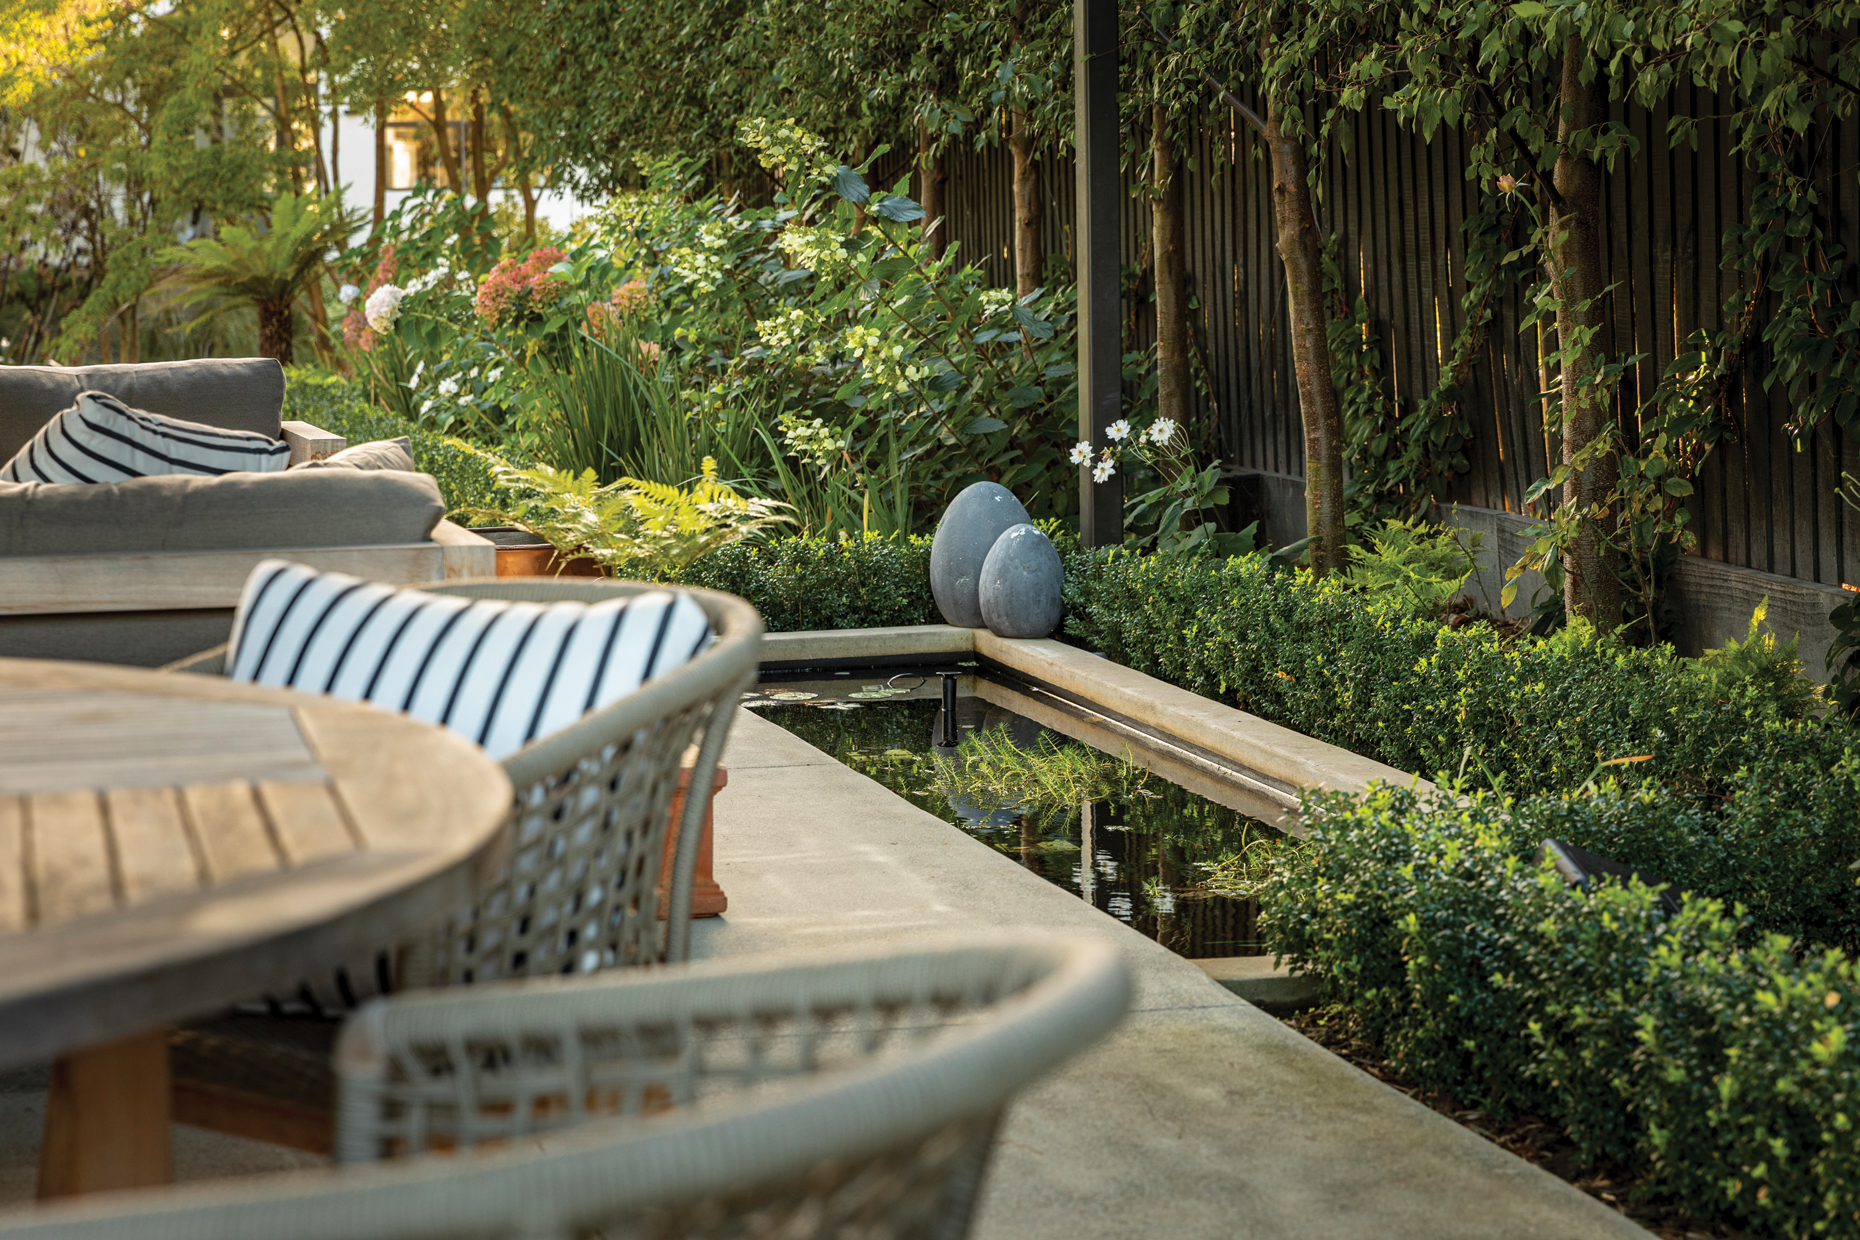 A tranquil setting offering privacy and dappled light to enjoy your favourite pastime.